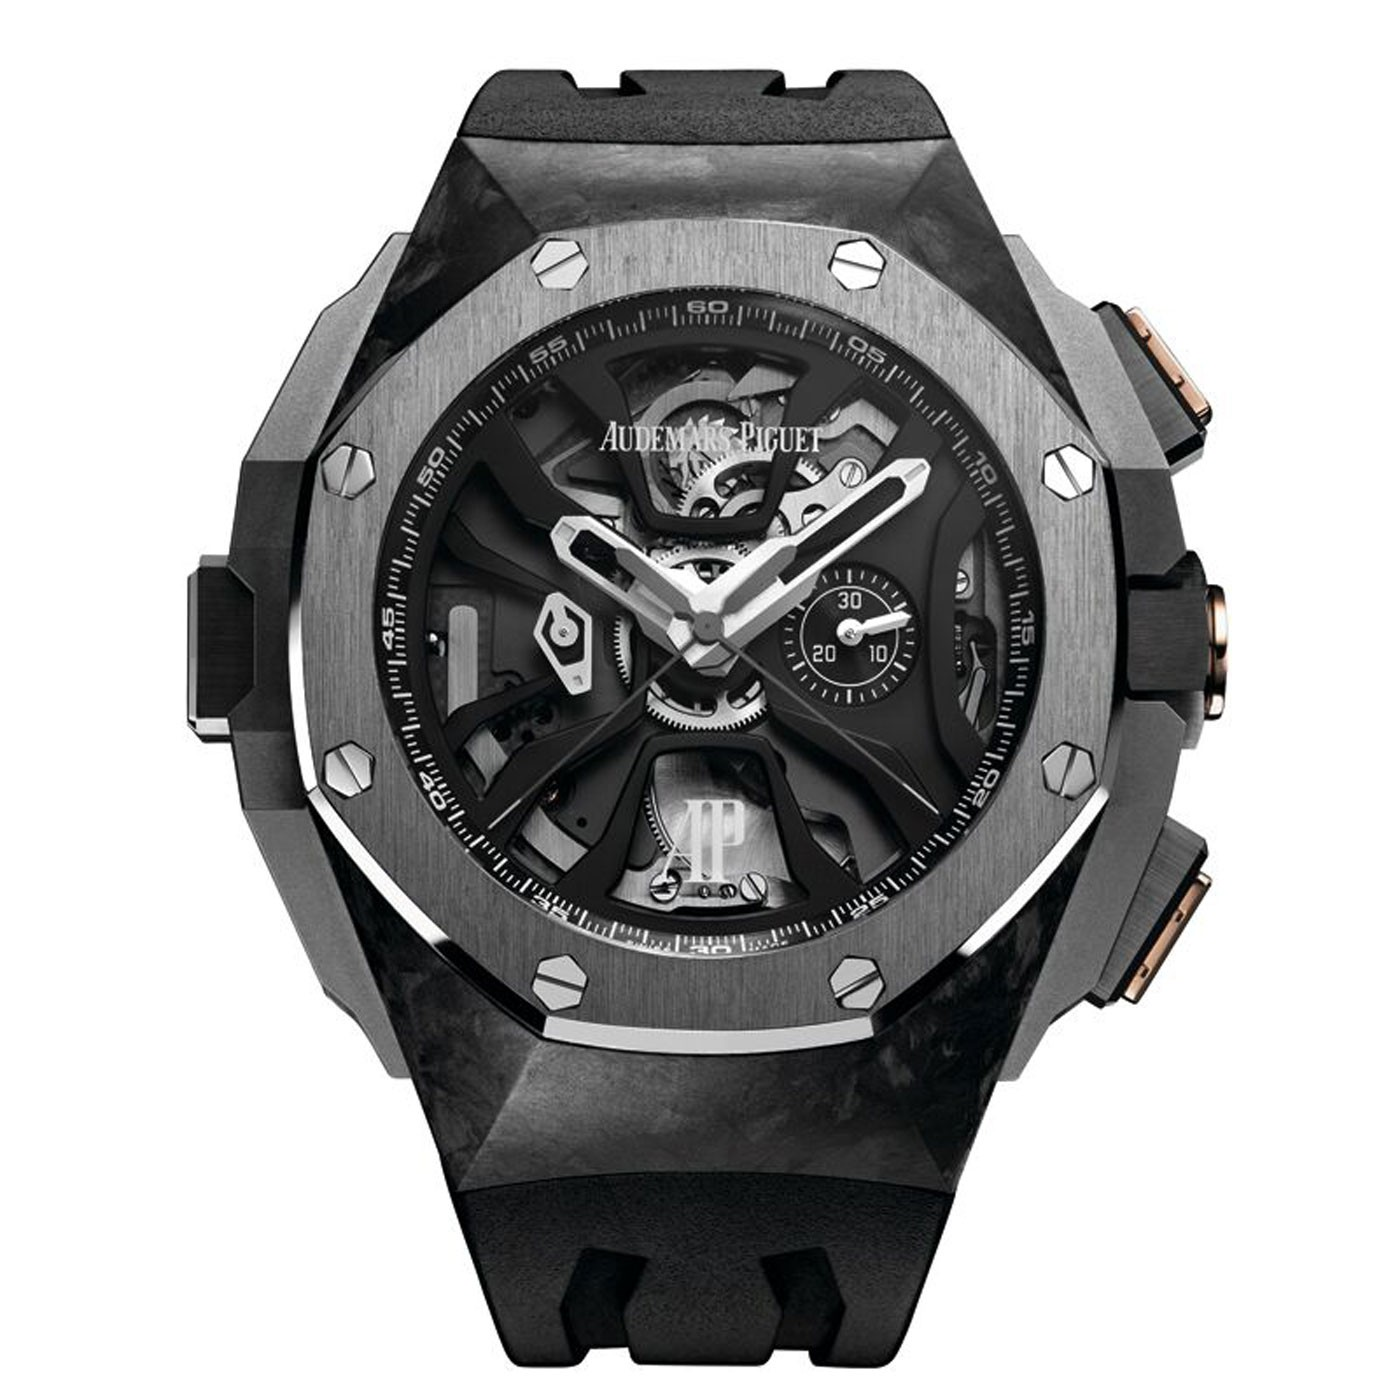 Front of Audemars Piguet Royal Oak Schumacher limited edition